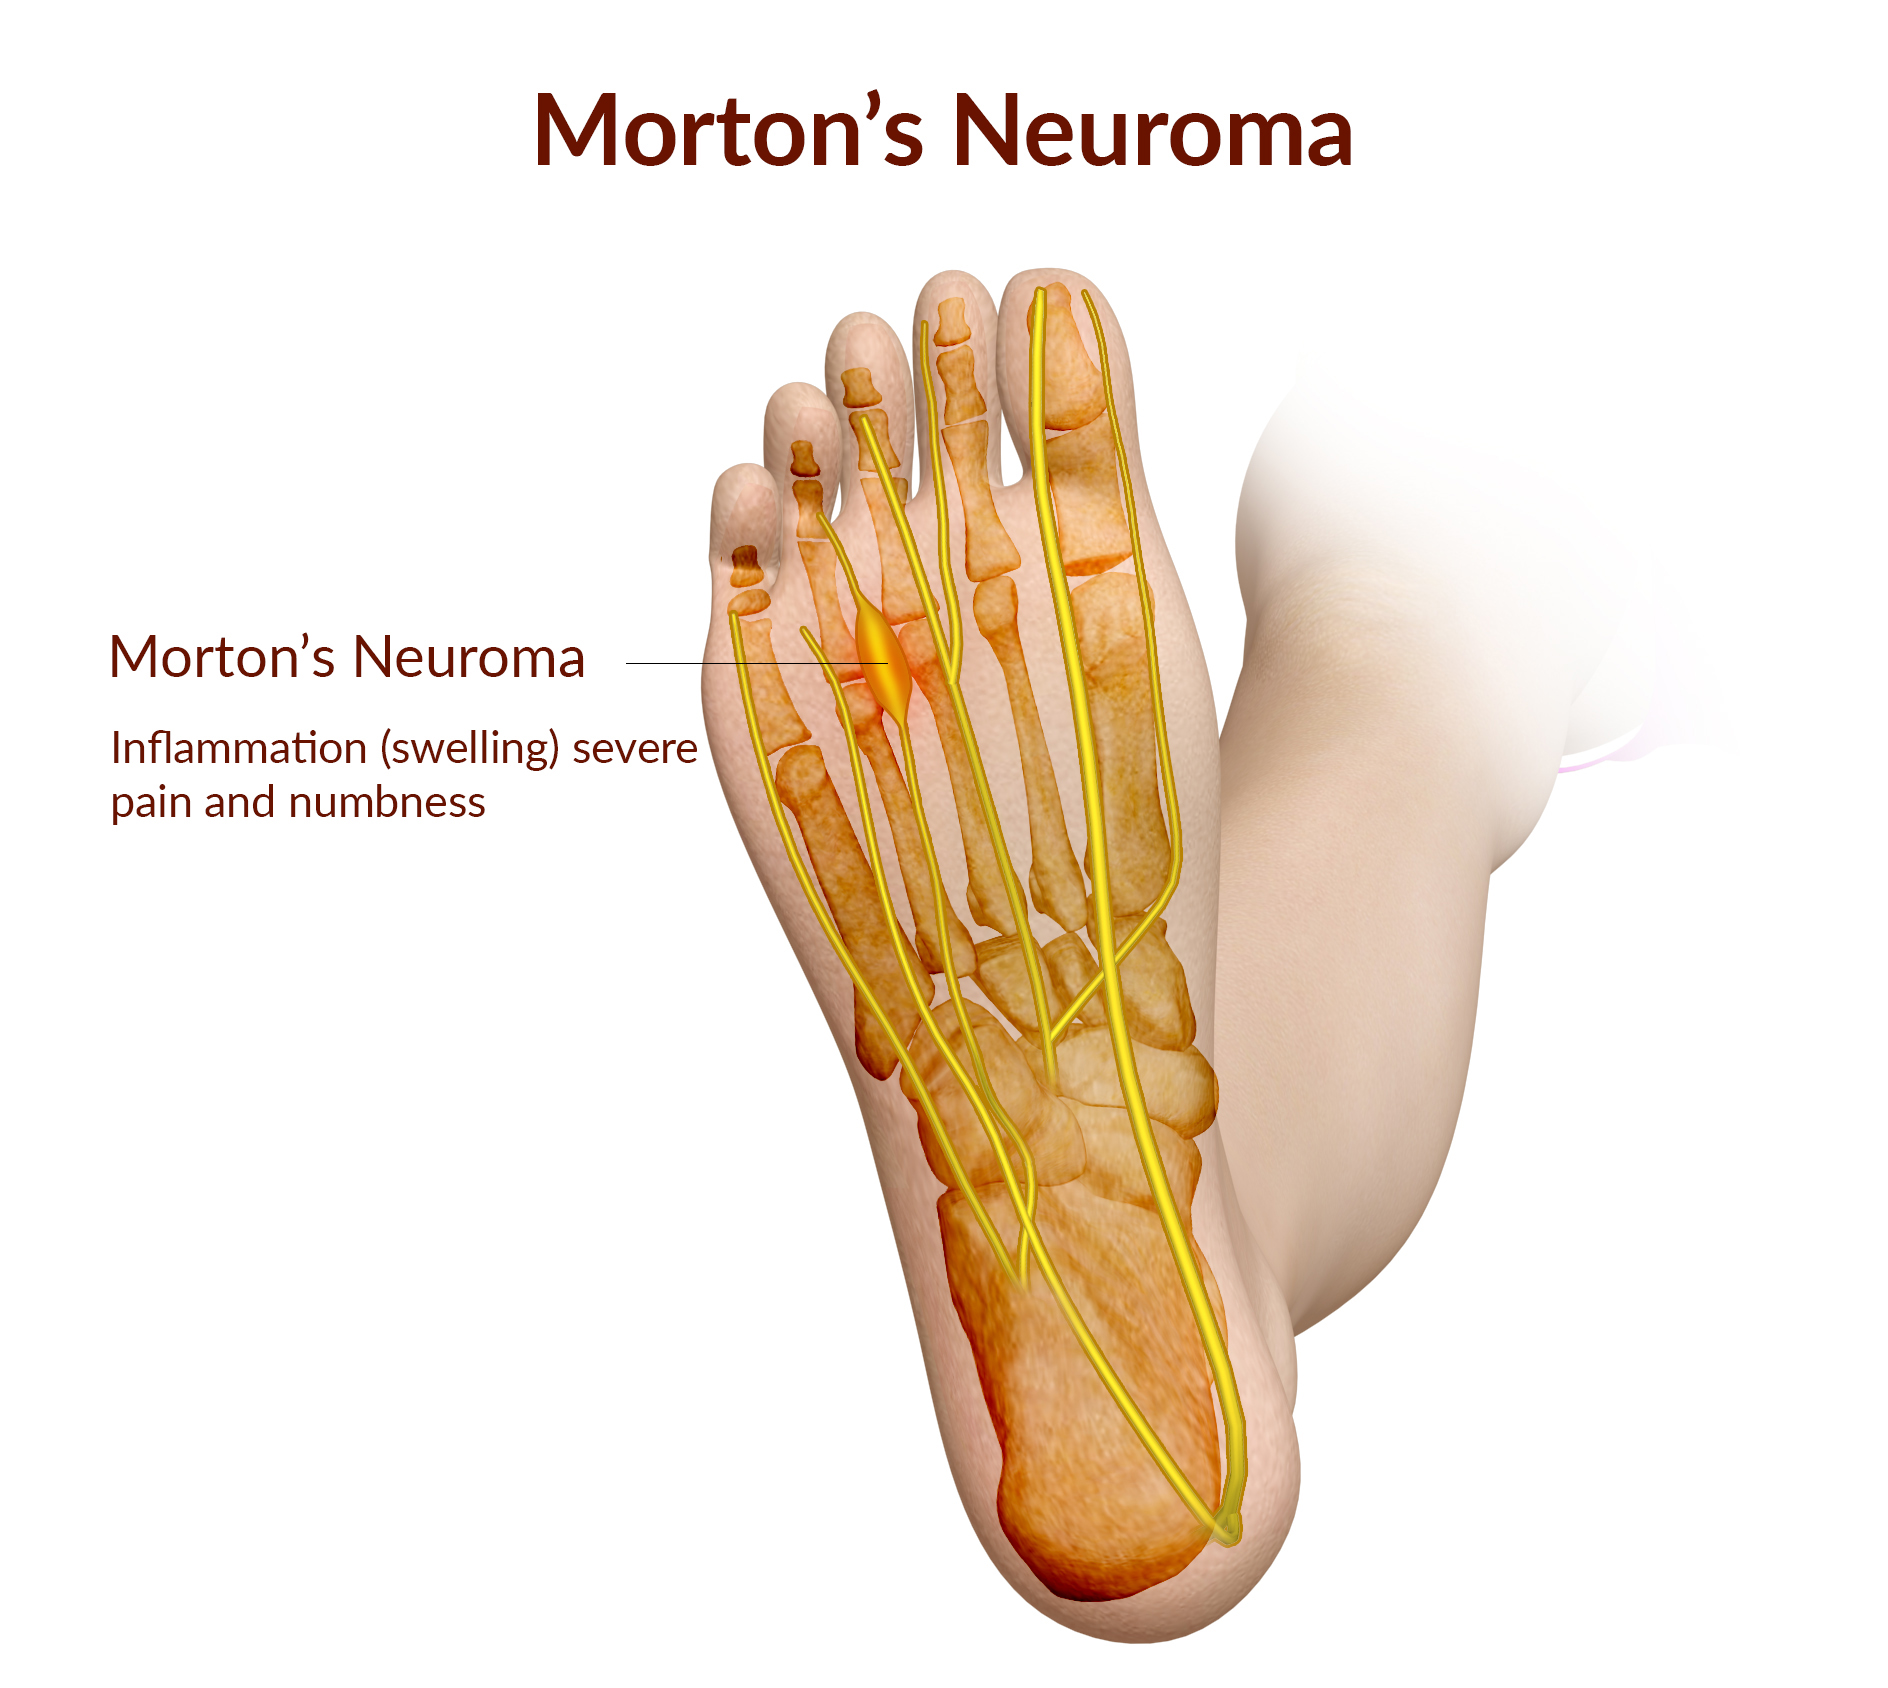 MORTONS-NEUROMA-LABELS.jpg